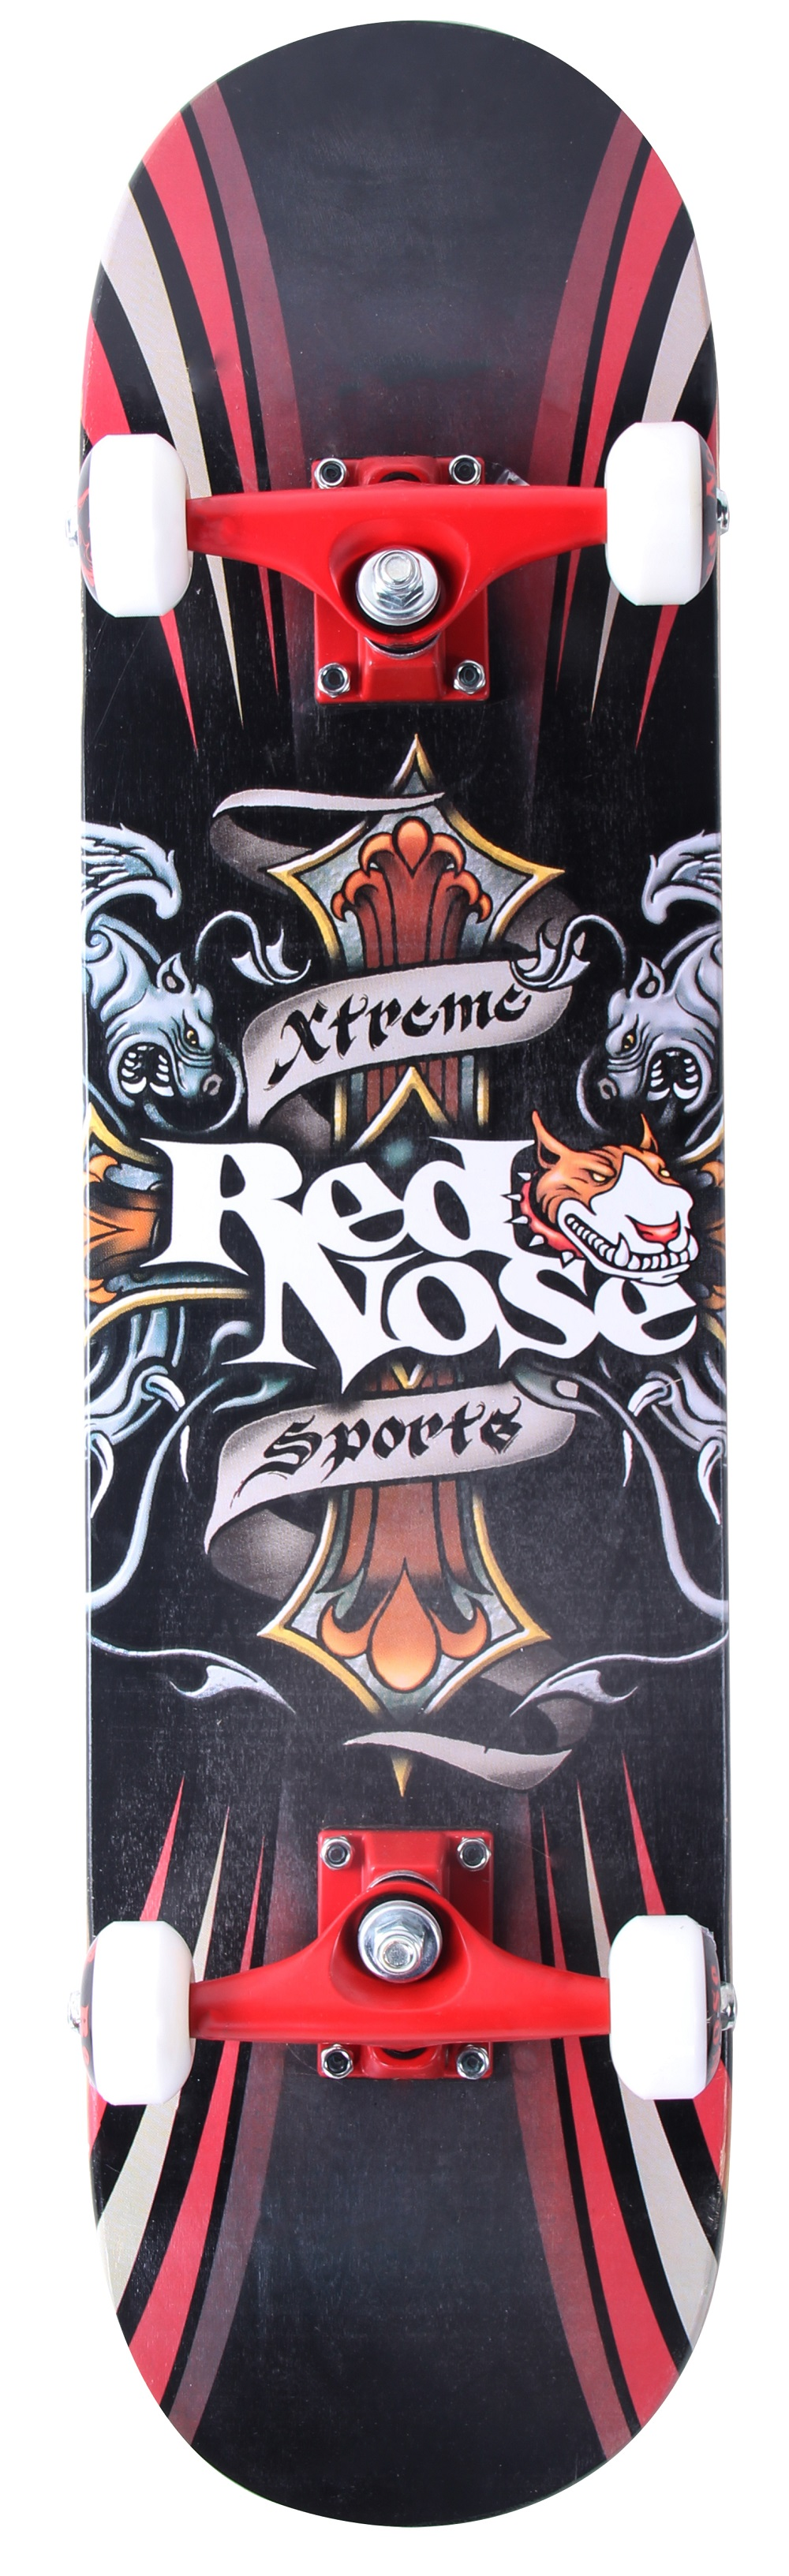 Skate Skateboard Red Nose Xtreme